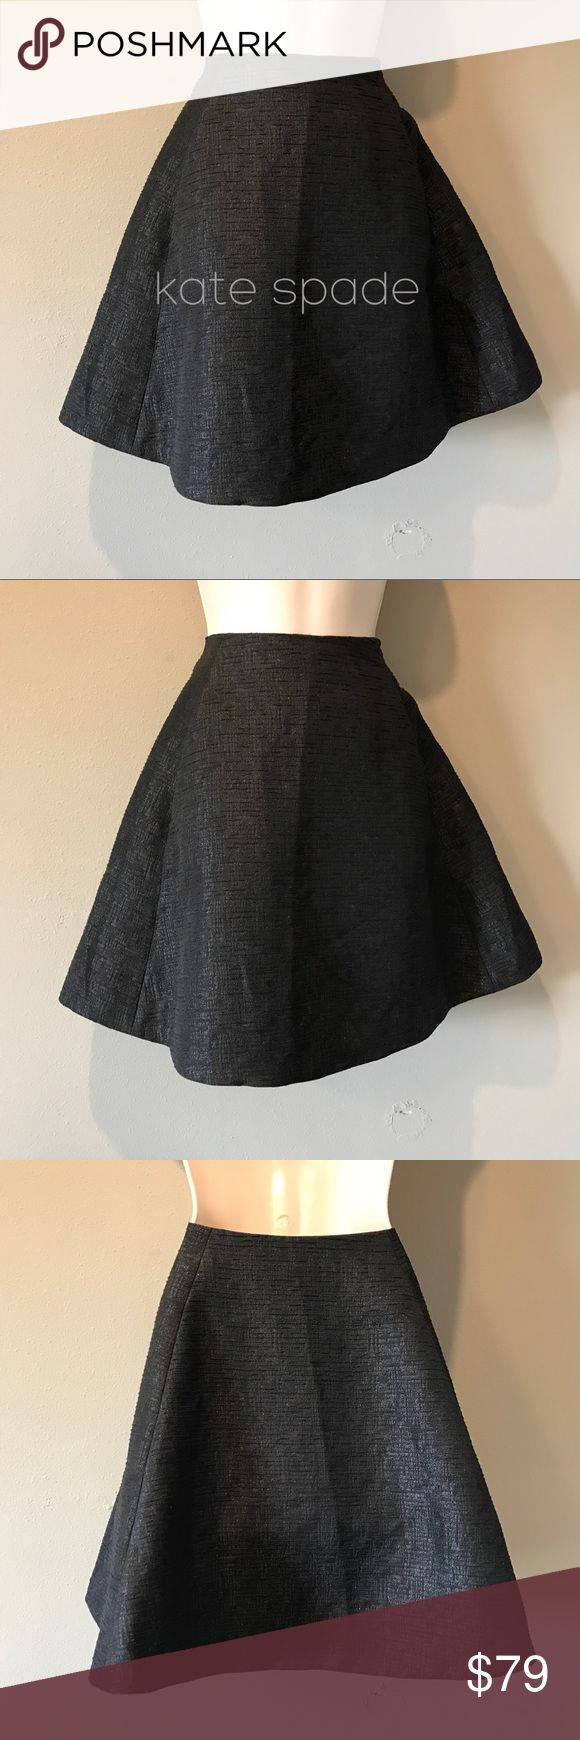 Kate Spade Black Circle Skirt, size 12 Beautiful Kate spade black textured and metallic circle skirt in excellent preowned condition. The metallic gives it a bit of sparkle, also has pockets :-) fully lined, size is 12 kate spade Skirts